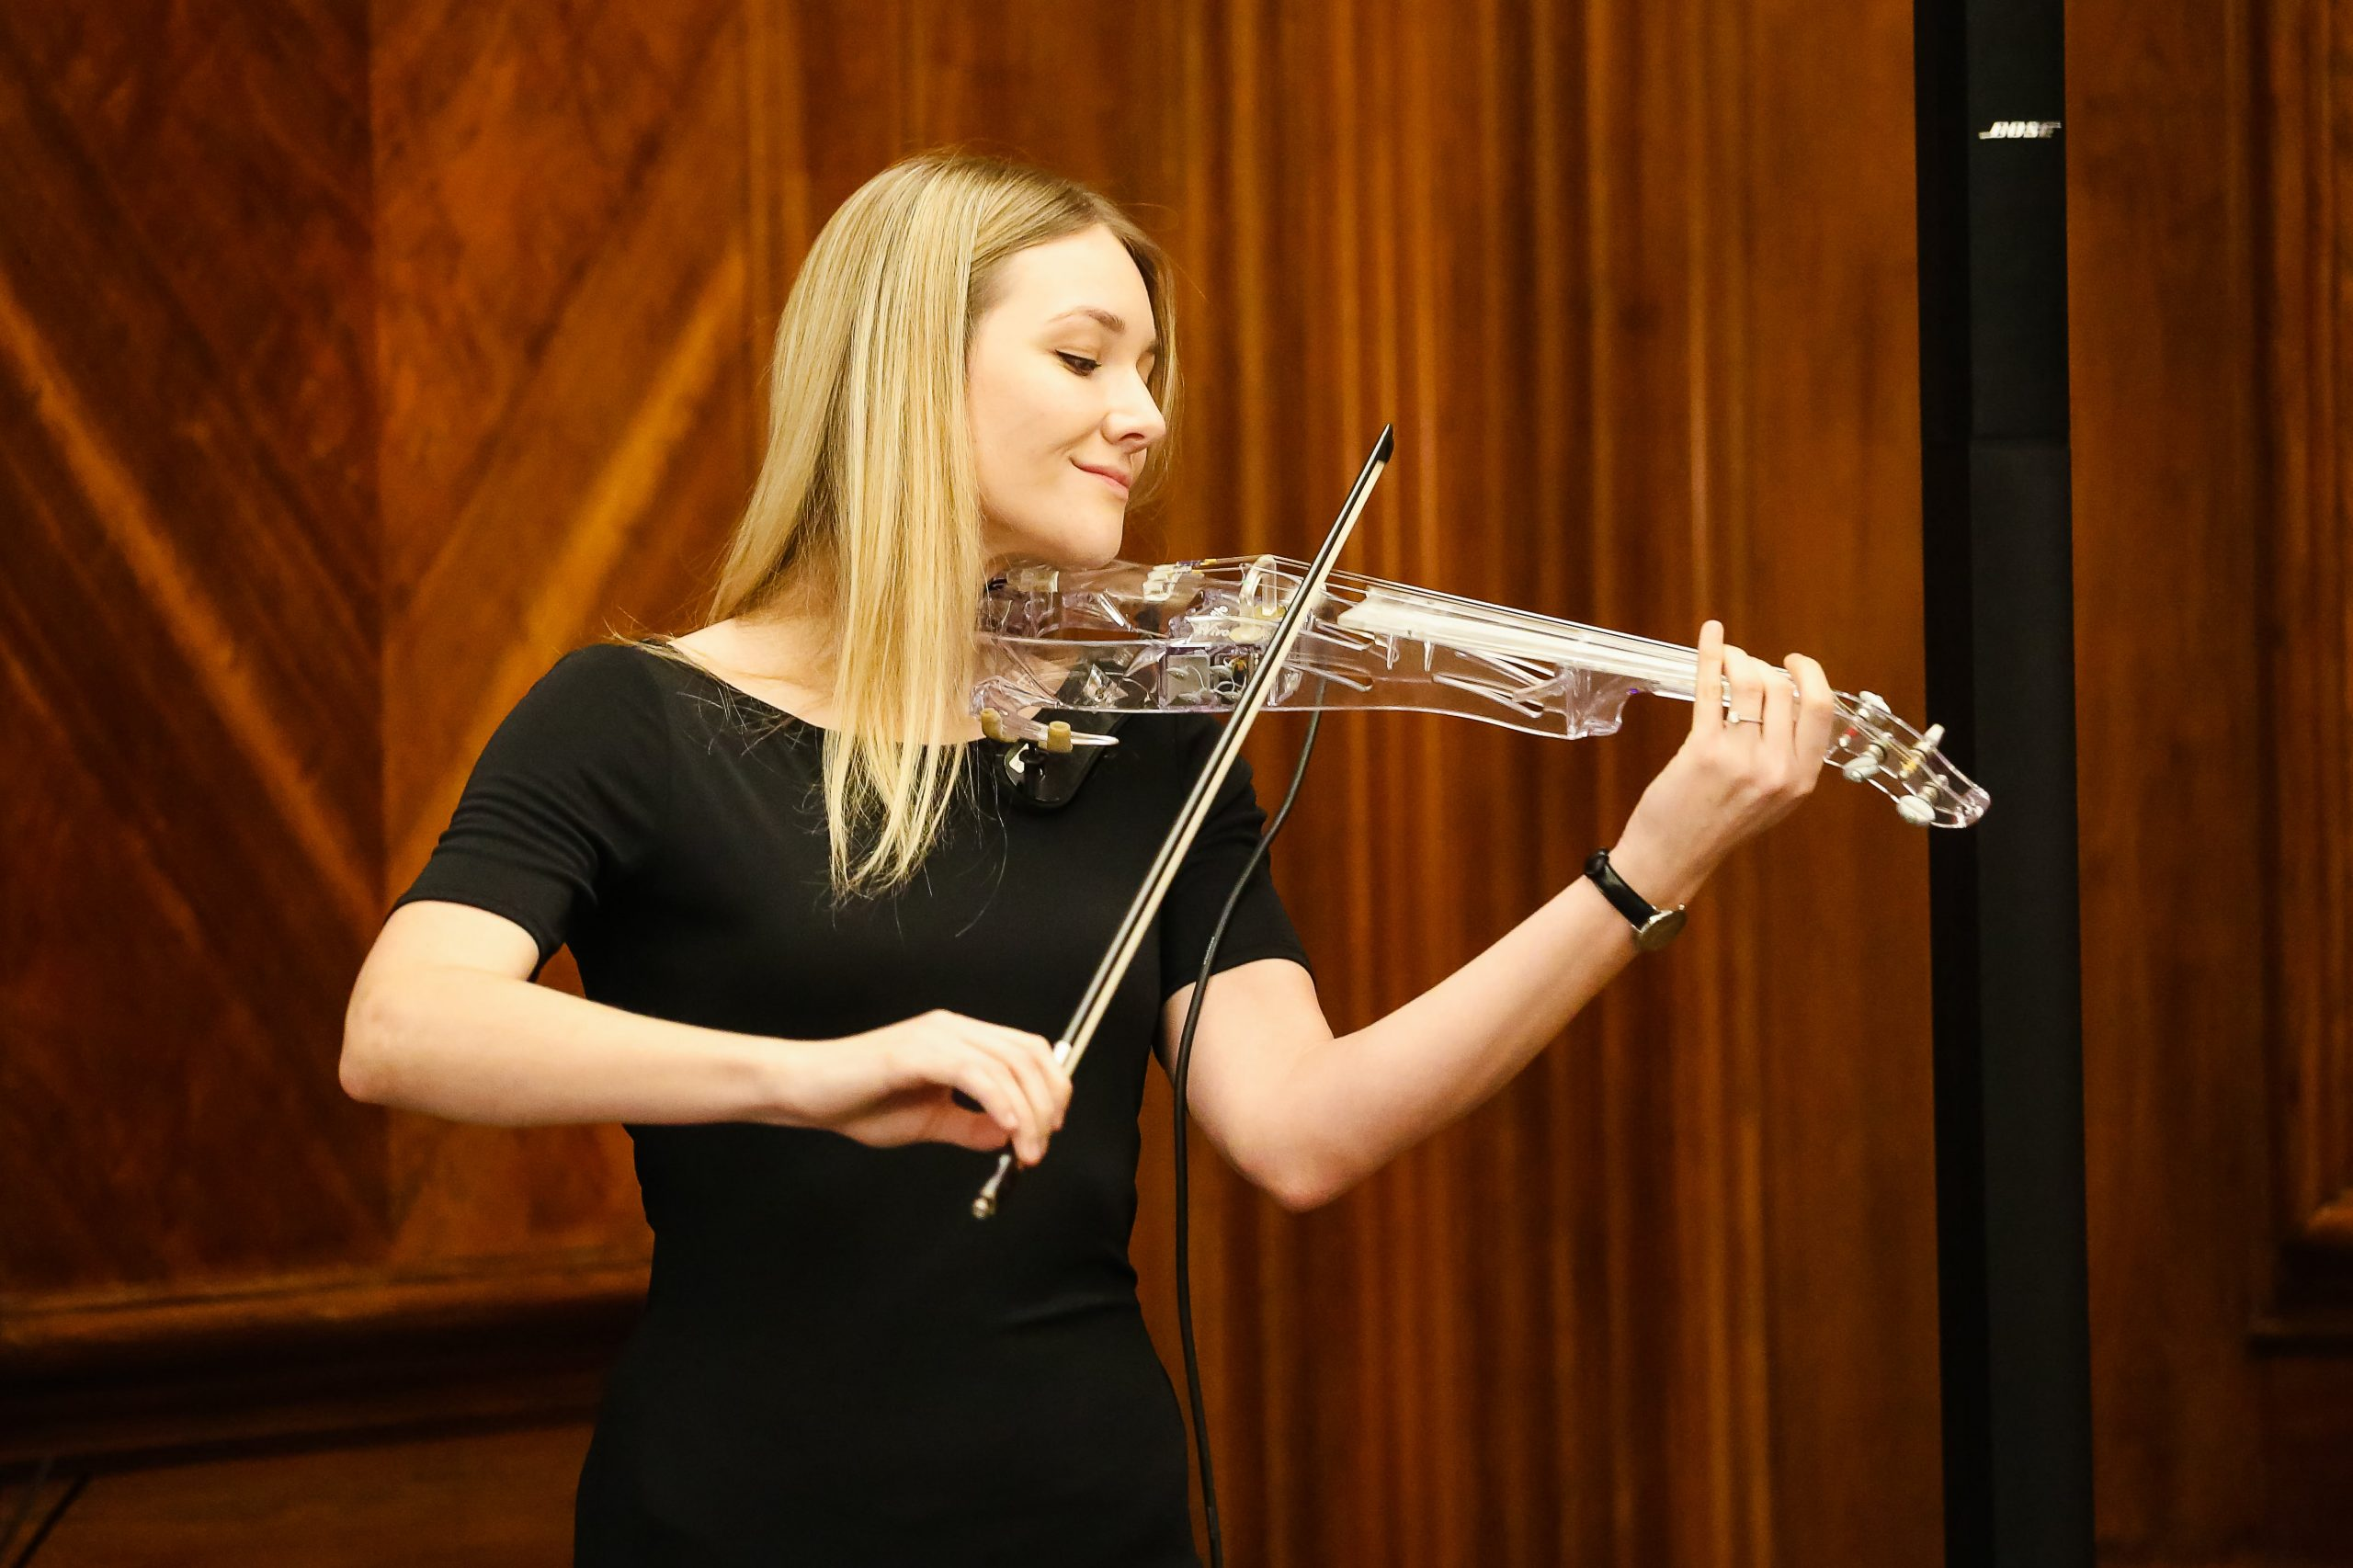 Sally Violin Electric Violinist